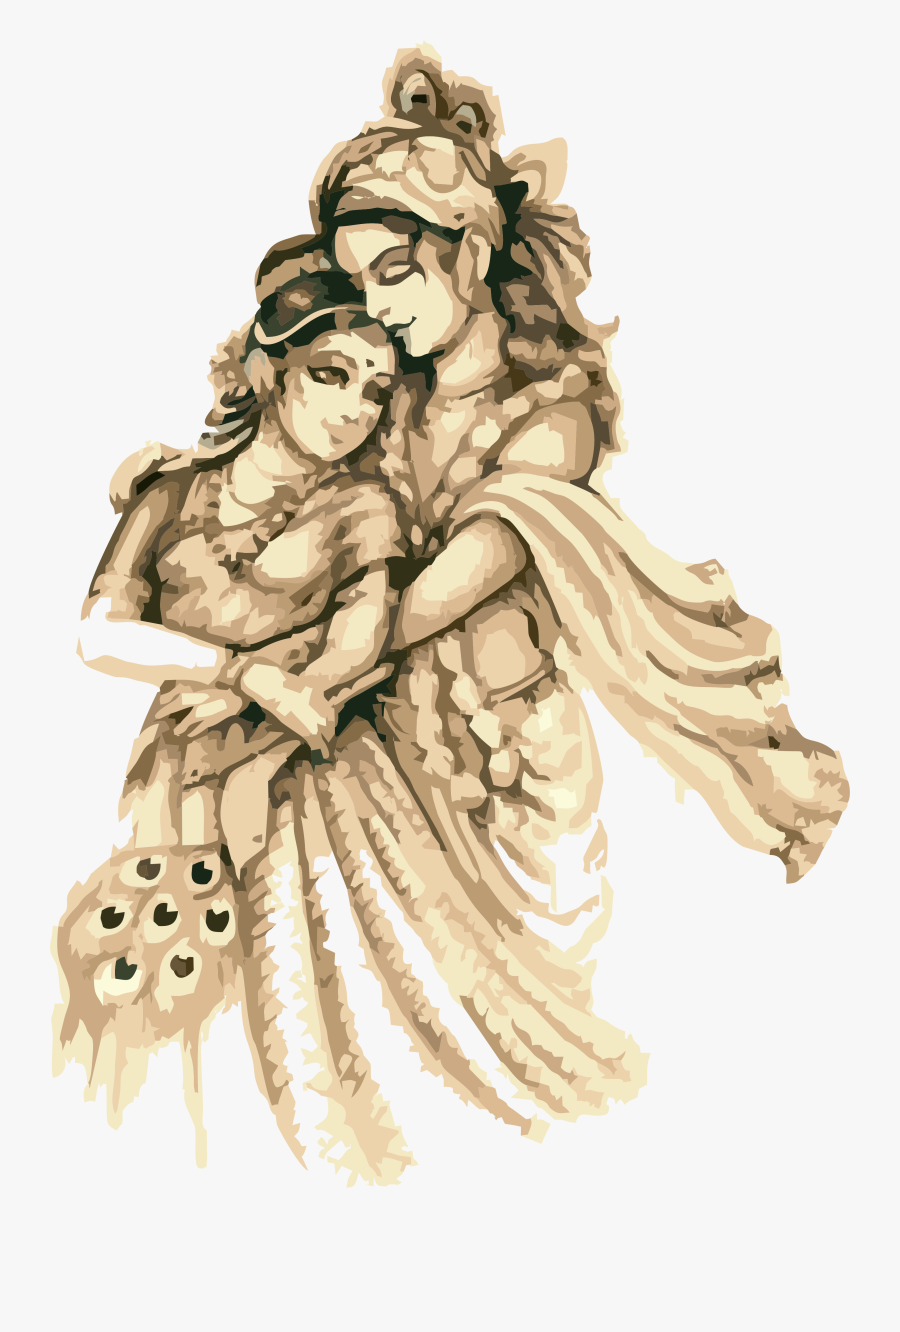 Krishna, Transparent Clipart